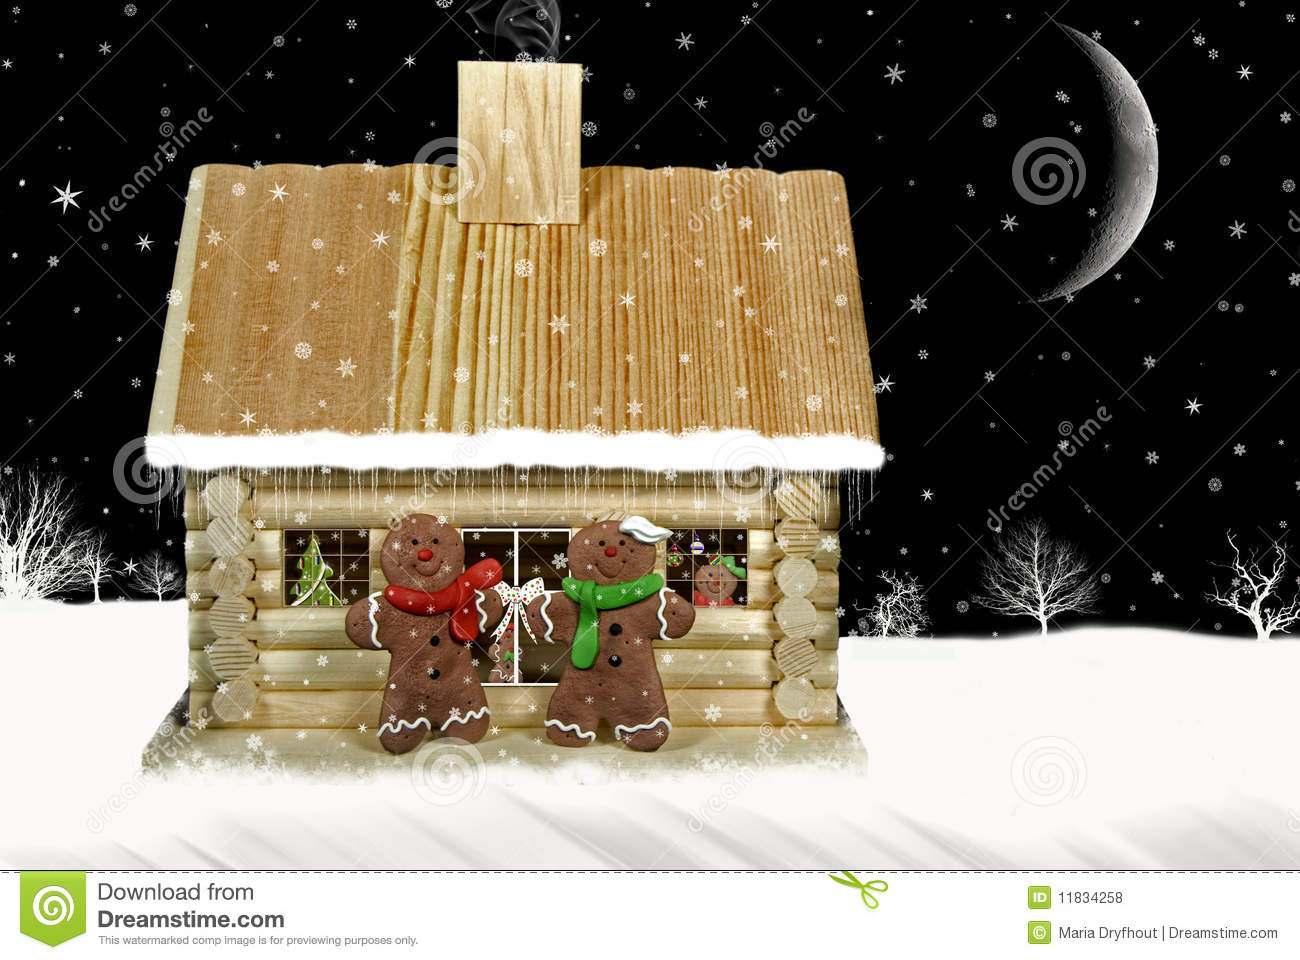 Country christmas royalty free stock photos image 11834258 for Country cabin christmas